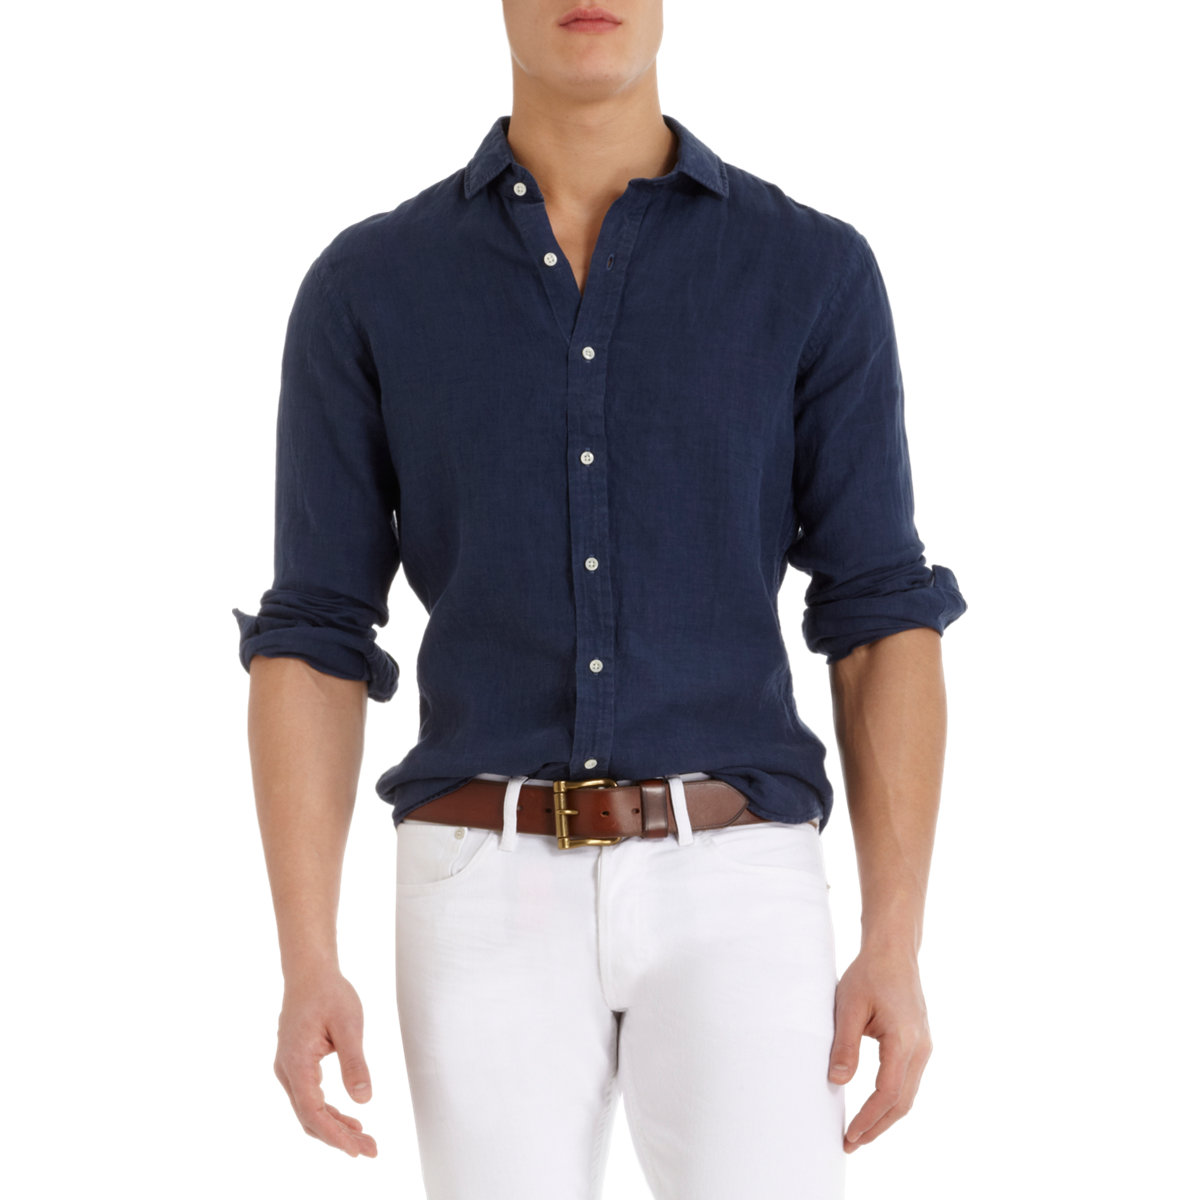 Find great deals on eBay for mens blue linen shirt. Shop with confidence. Skip to main content. eBay: Shop by category. Ralph Lauren Mens Linen Shirt Large Blue Long Sleeve Button Front Pony Logo. Lauren Ralph Lauren · L · Long Sleeve. $ Buy It Now +$ shipping. Free Returns.